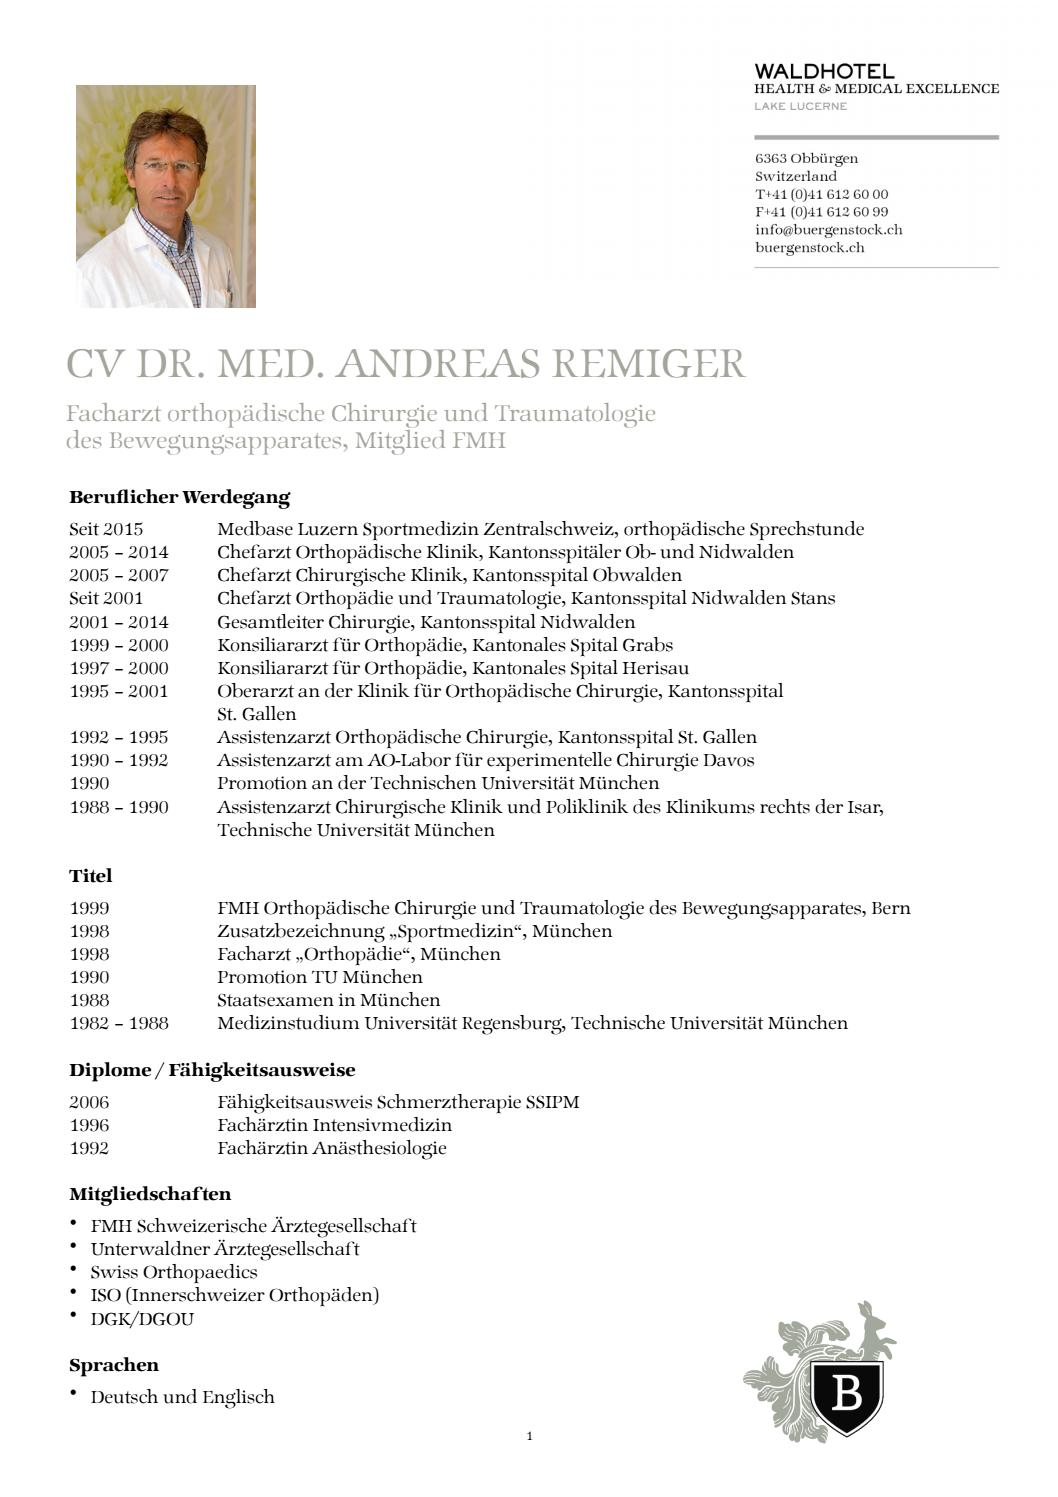 Lebenslauf Andreas Remiger by The Bürgenstock Selection - issuu